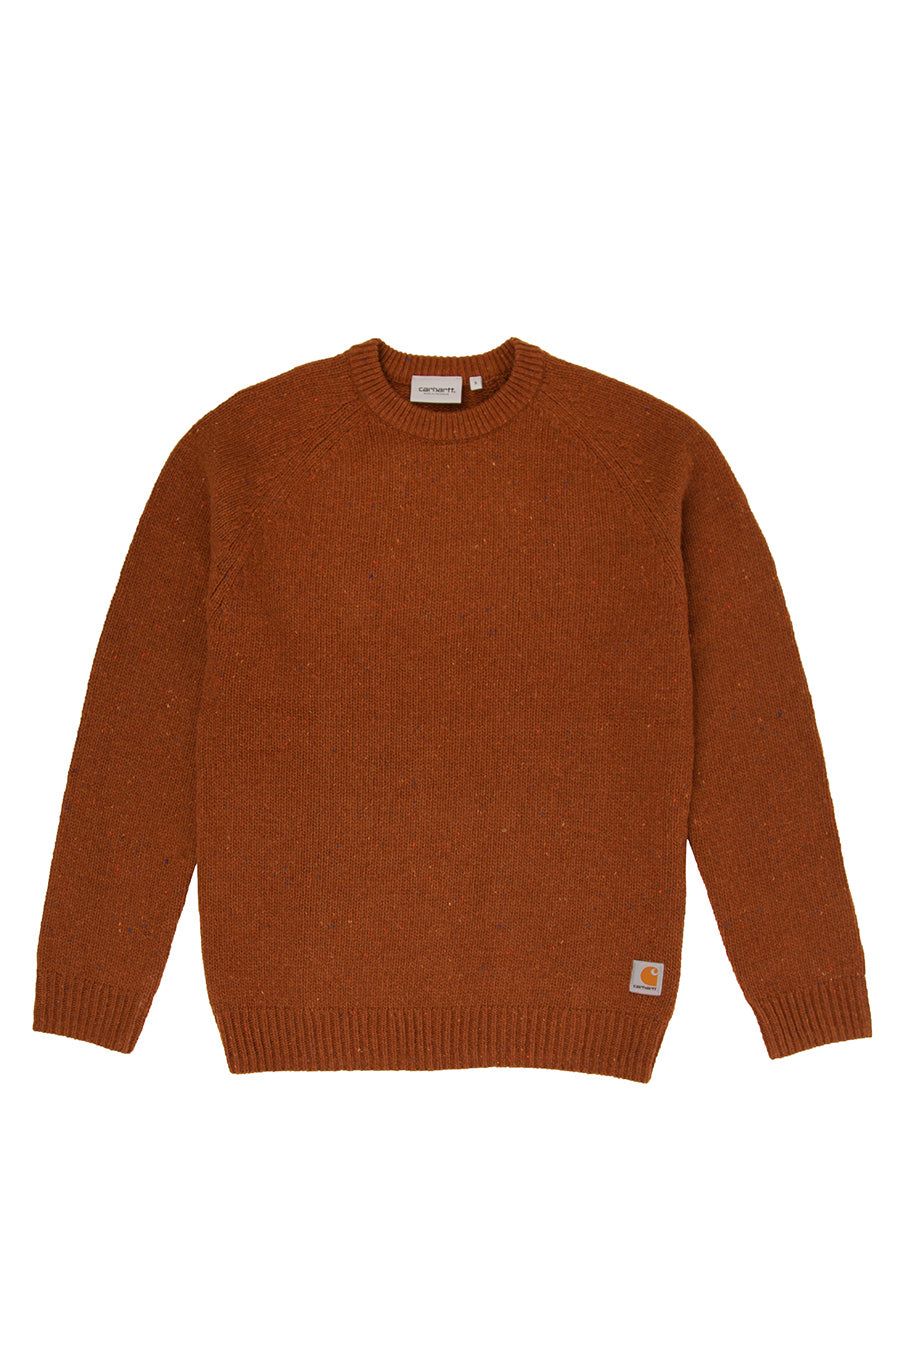 Carhartt WIP - Brandy Heather Anglistic Sweater | 1032 SPACE